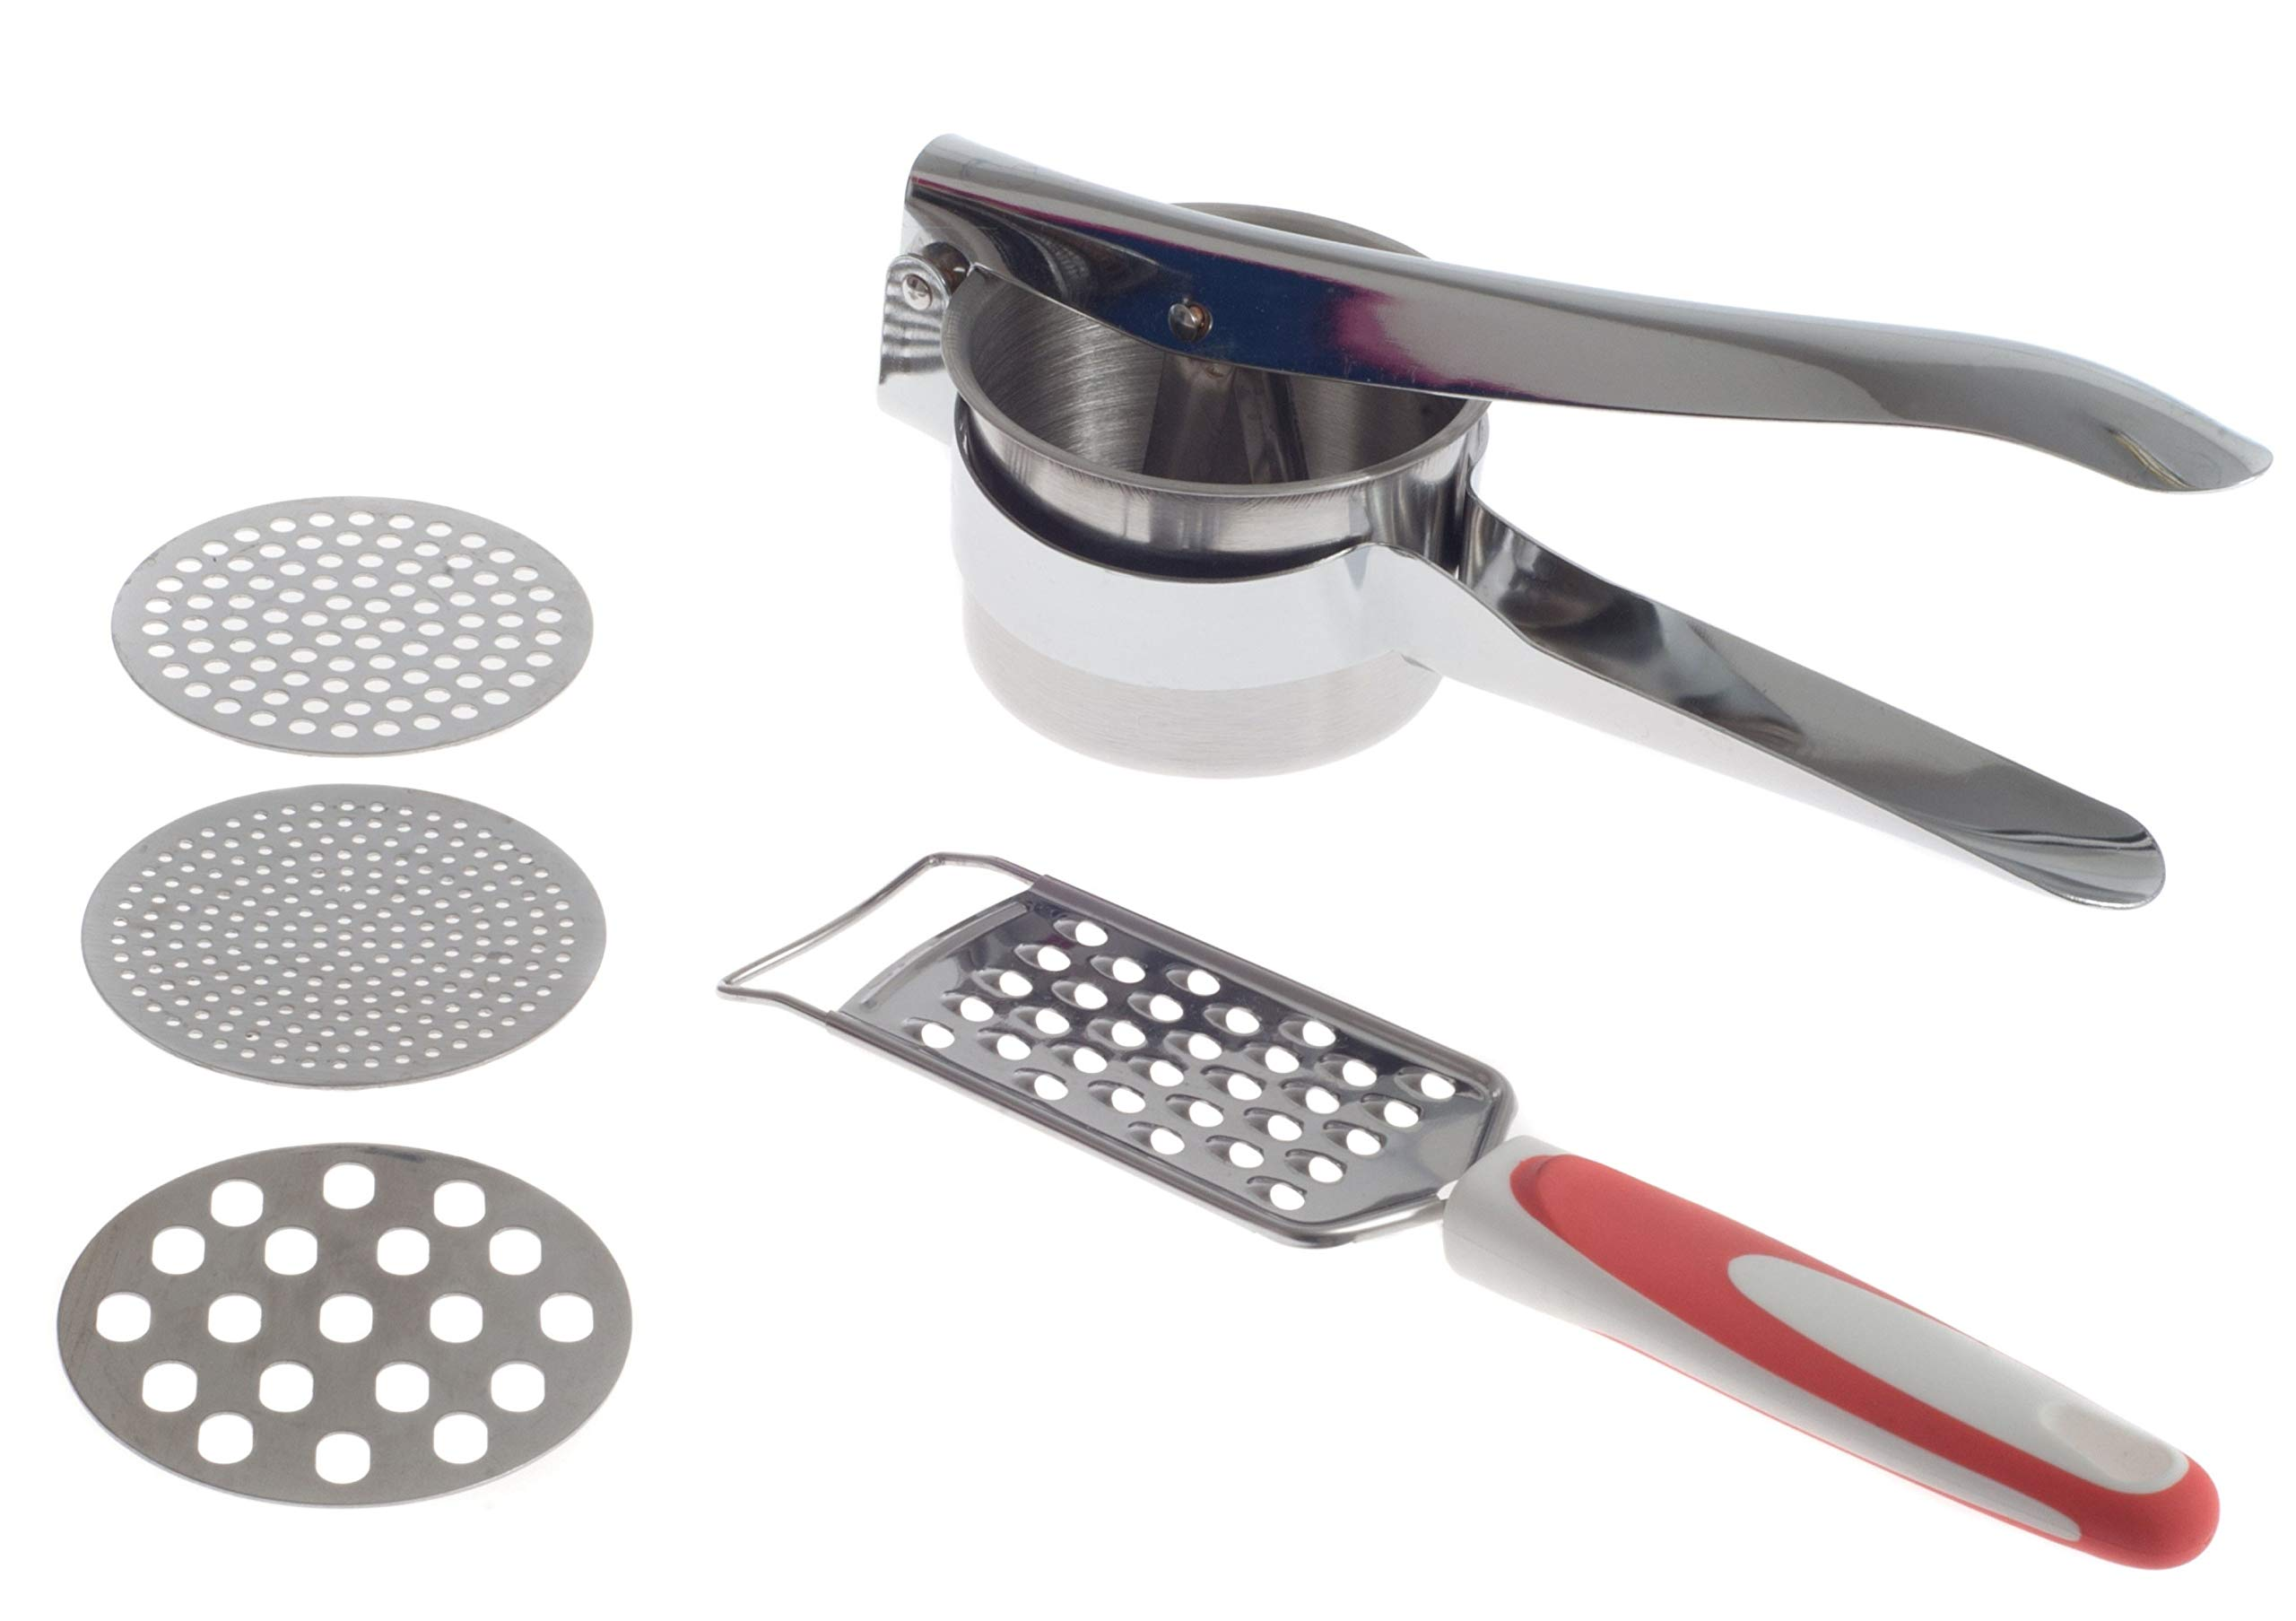 Zujara Potato Ricer Masher Set with Grater in Stainless Steel with 3 Interchangeable Disks, also use as  Fruit Press,  Baby Food maker, for Vegetable or Cauliflower Puree, Gnocchi and Spaetzle  by ZUJARA